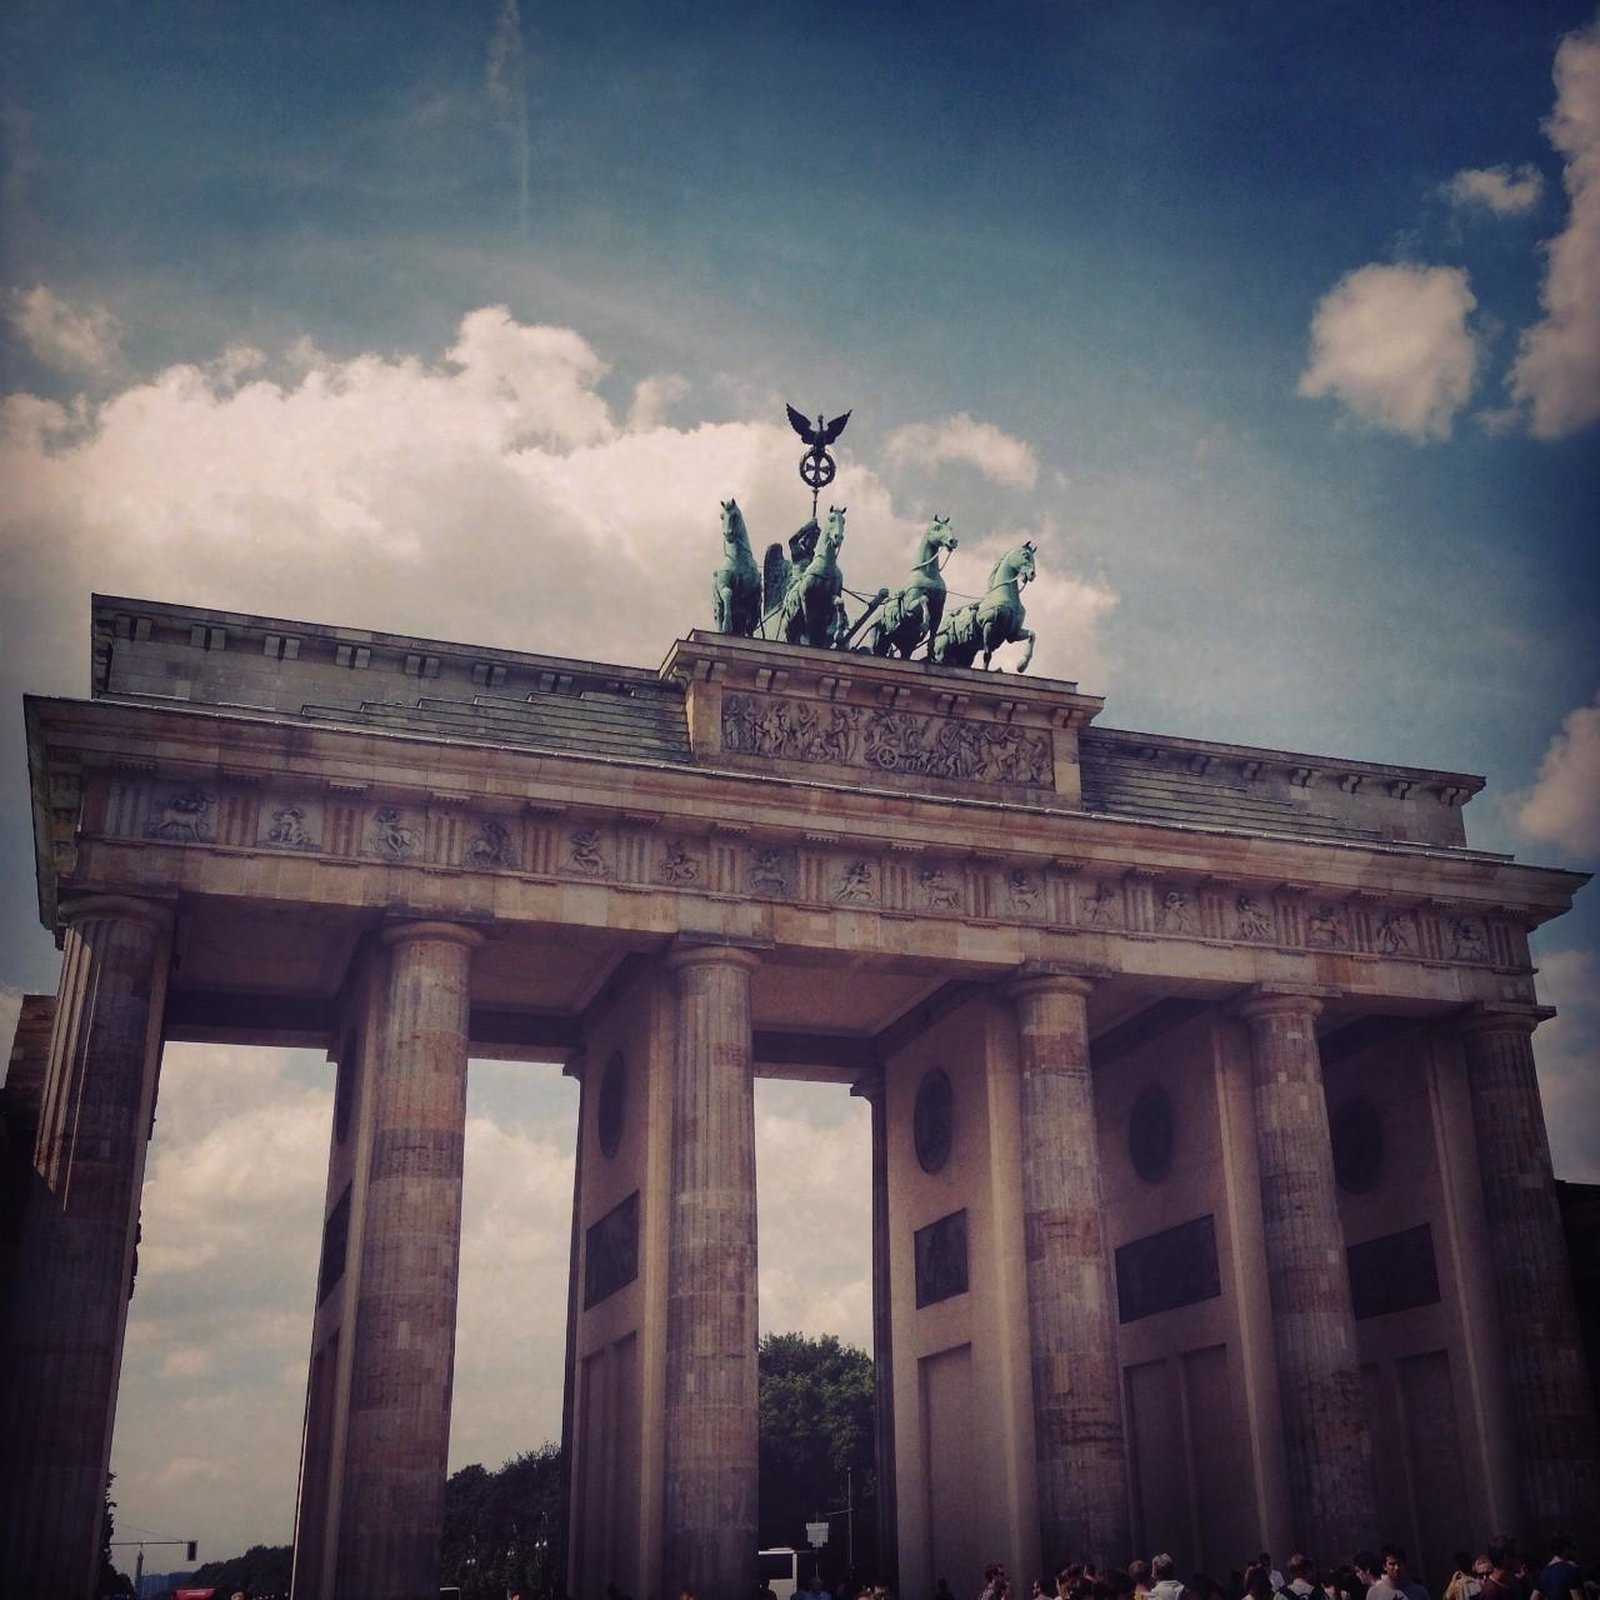 A picture of the Brandenburg Gate